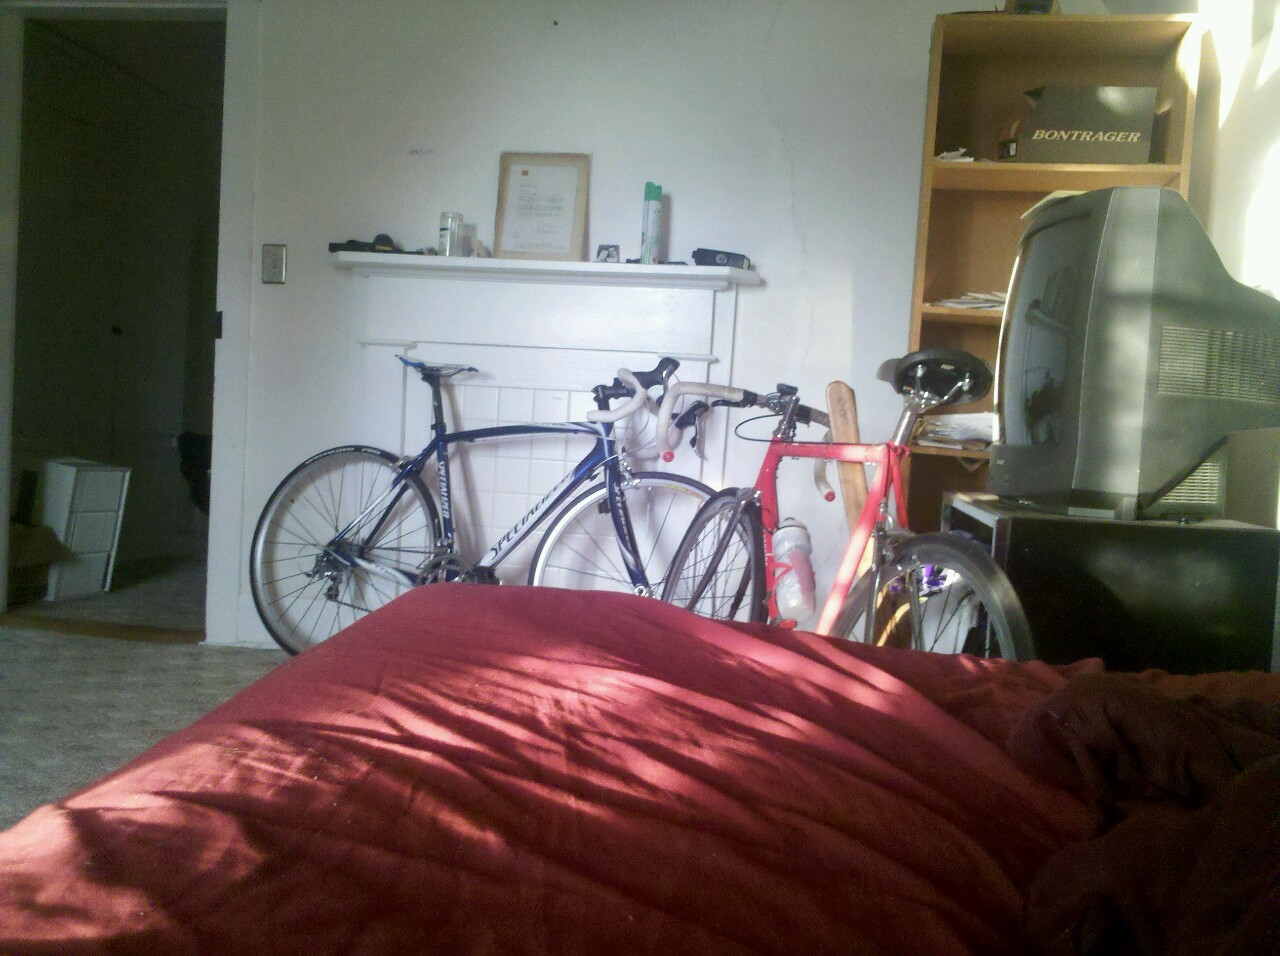 My two babies resting in the house during an Ohio winter, a specialized tarmac elite and steel langster. I am so excited to put countless miles on the tarmac as soon as the weather breaks.